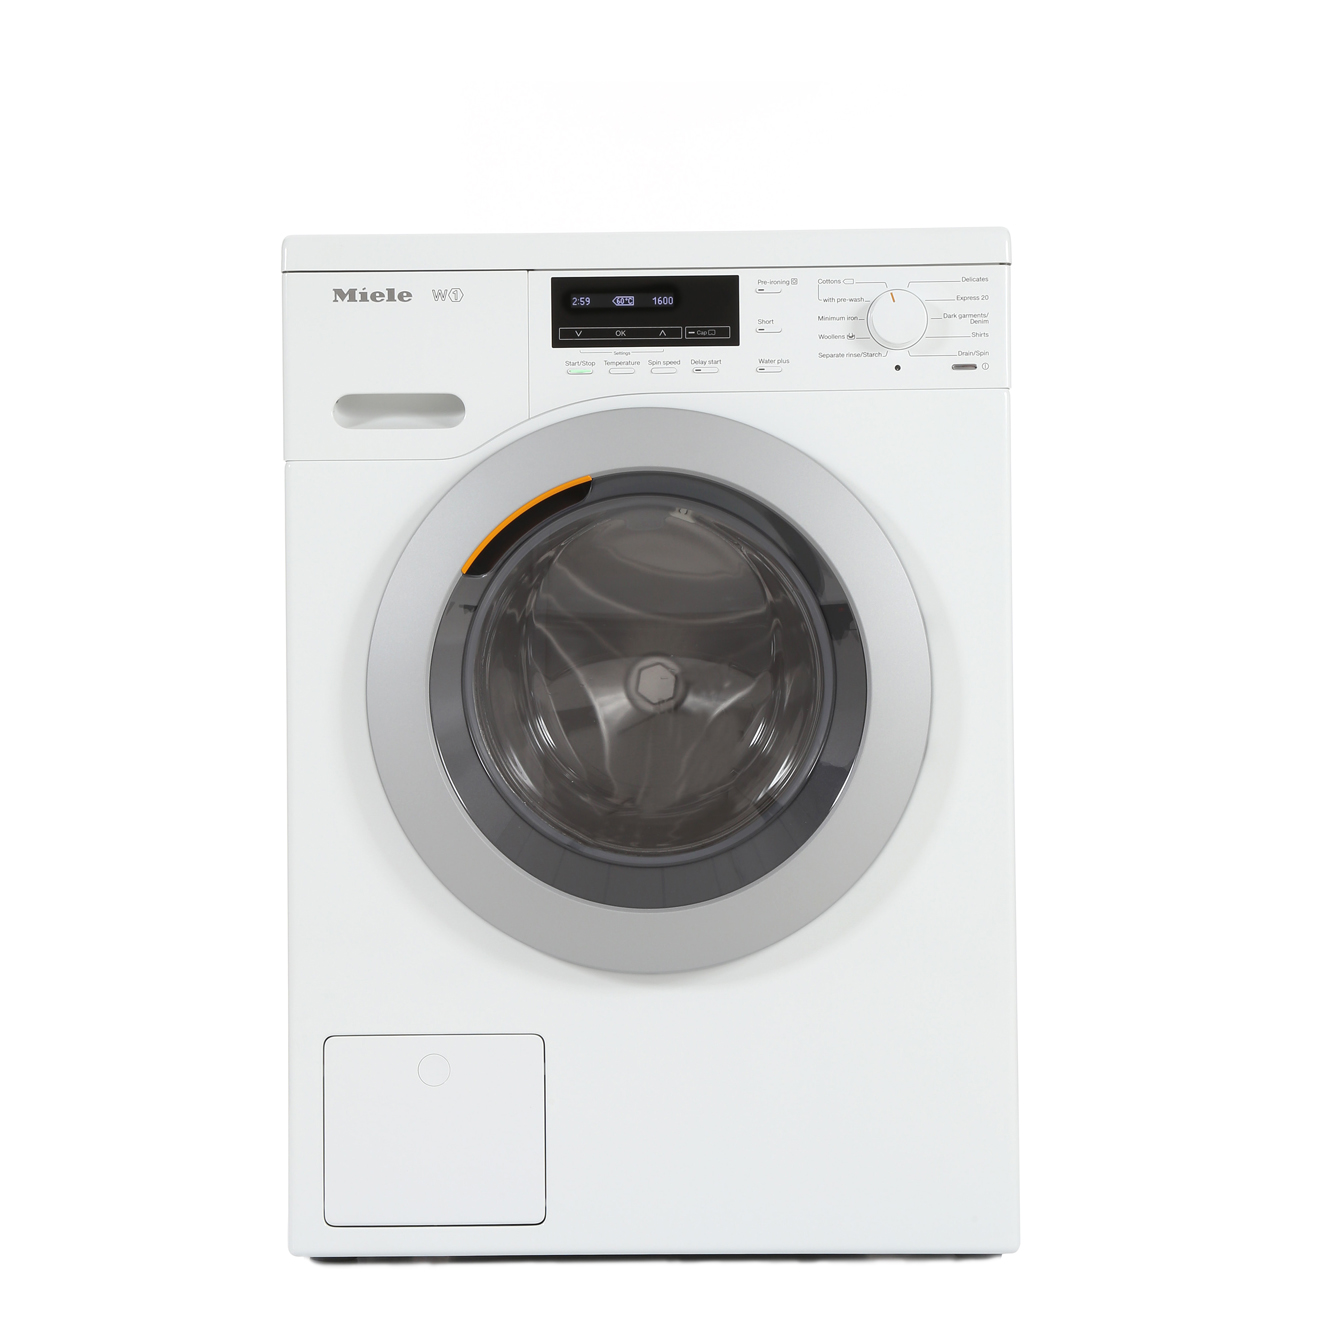 buy miele w1 chromeedition wkb120 washing machine wkb120 lotus white with silver plastic. Black Bedroom Furniture Sets. Home Design Ideas